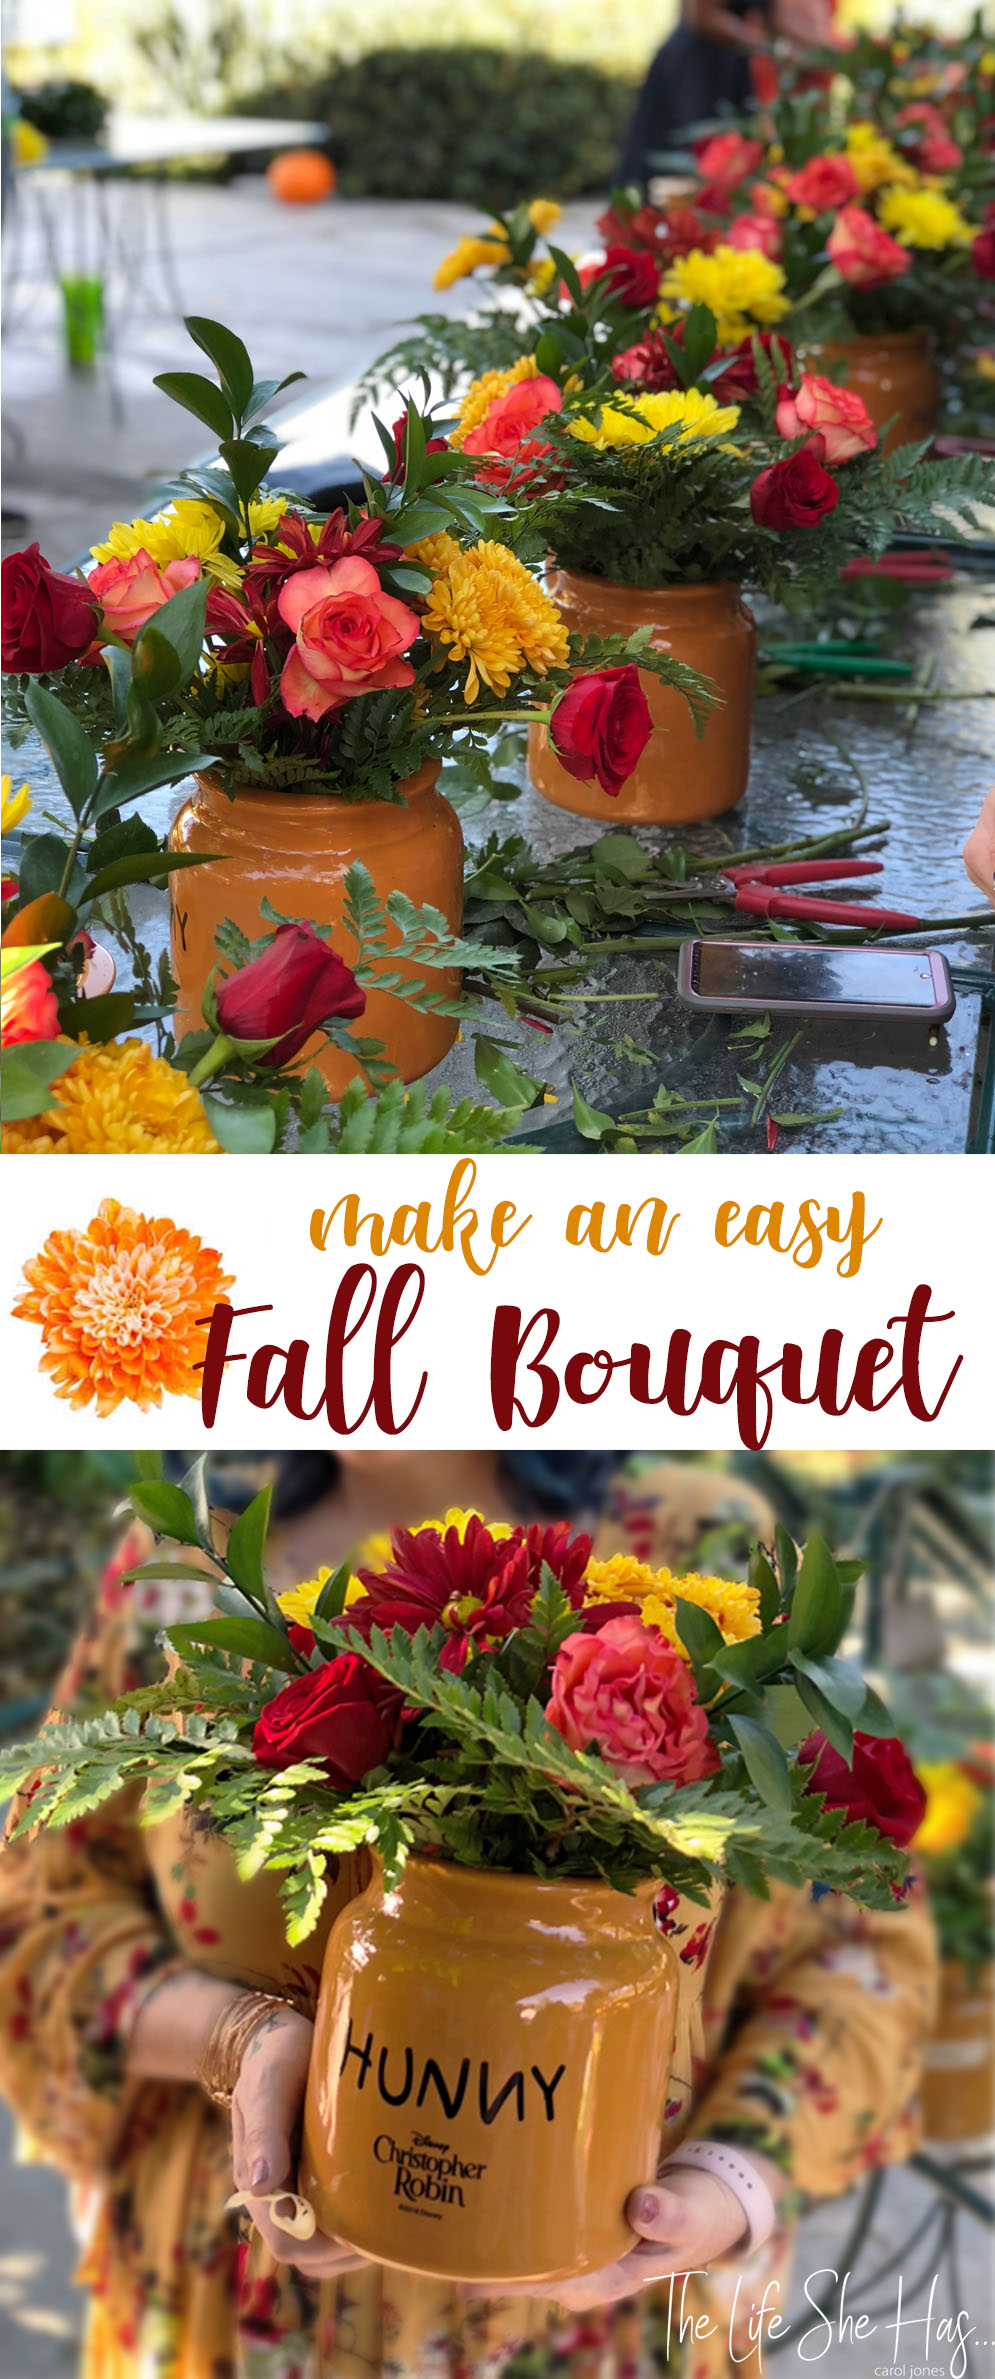 Easy Fall Bouquet Tutorial